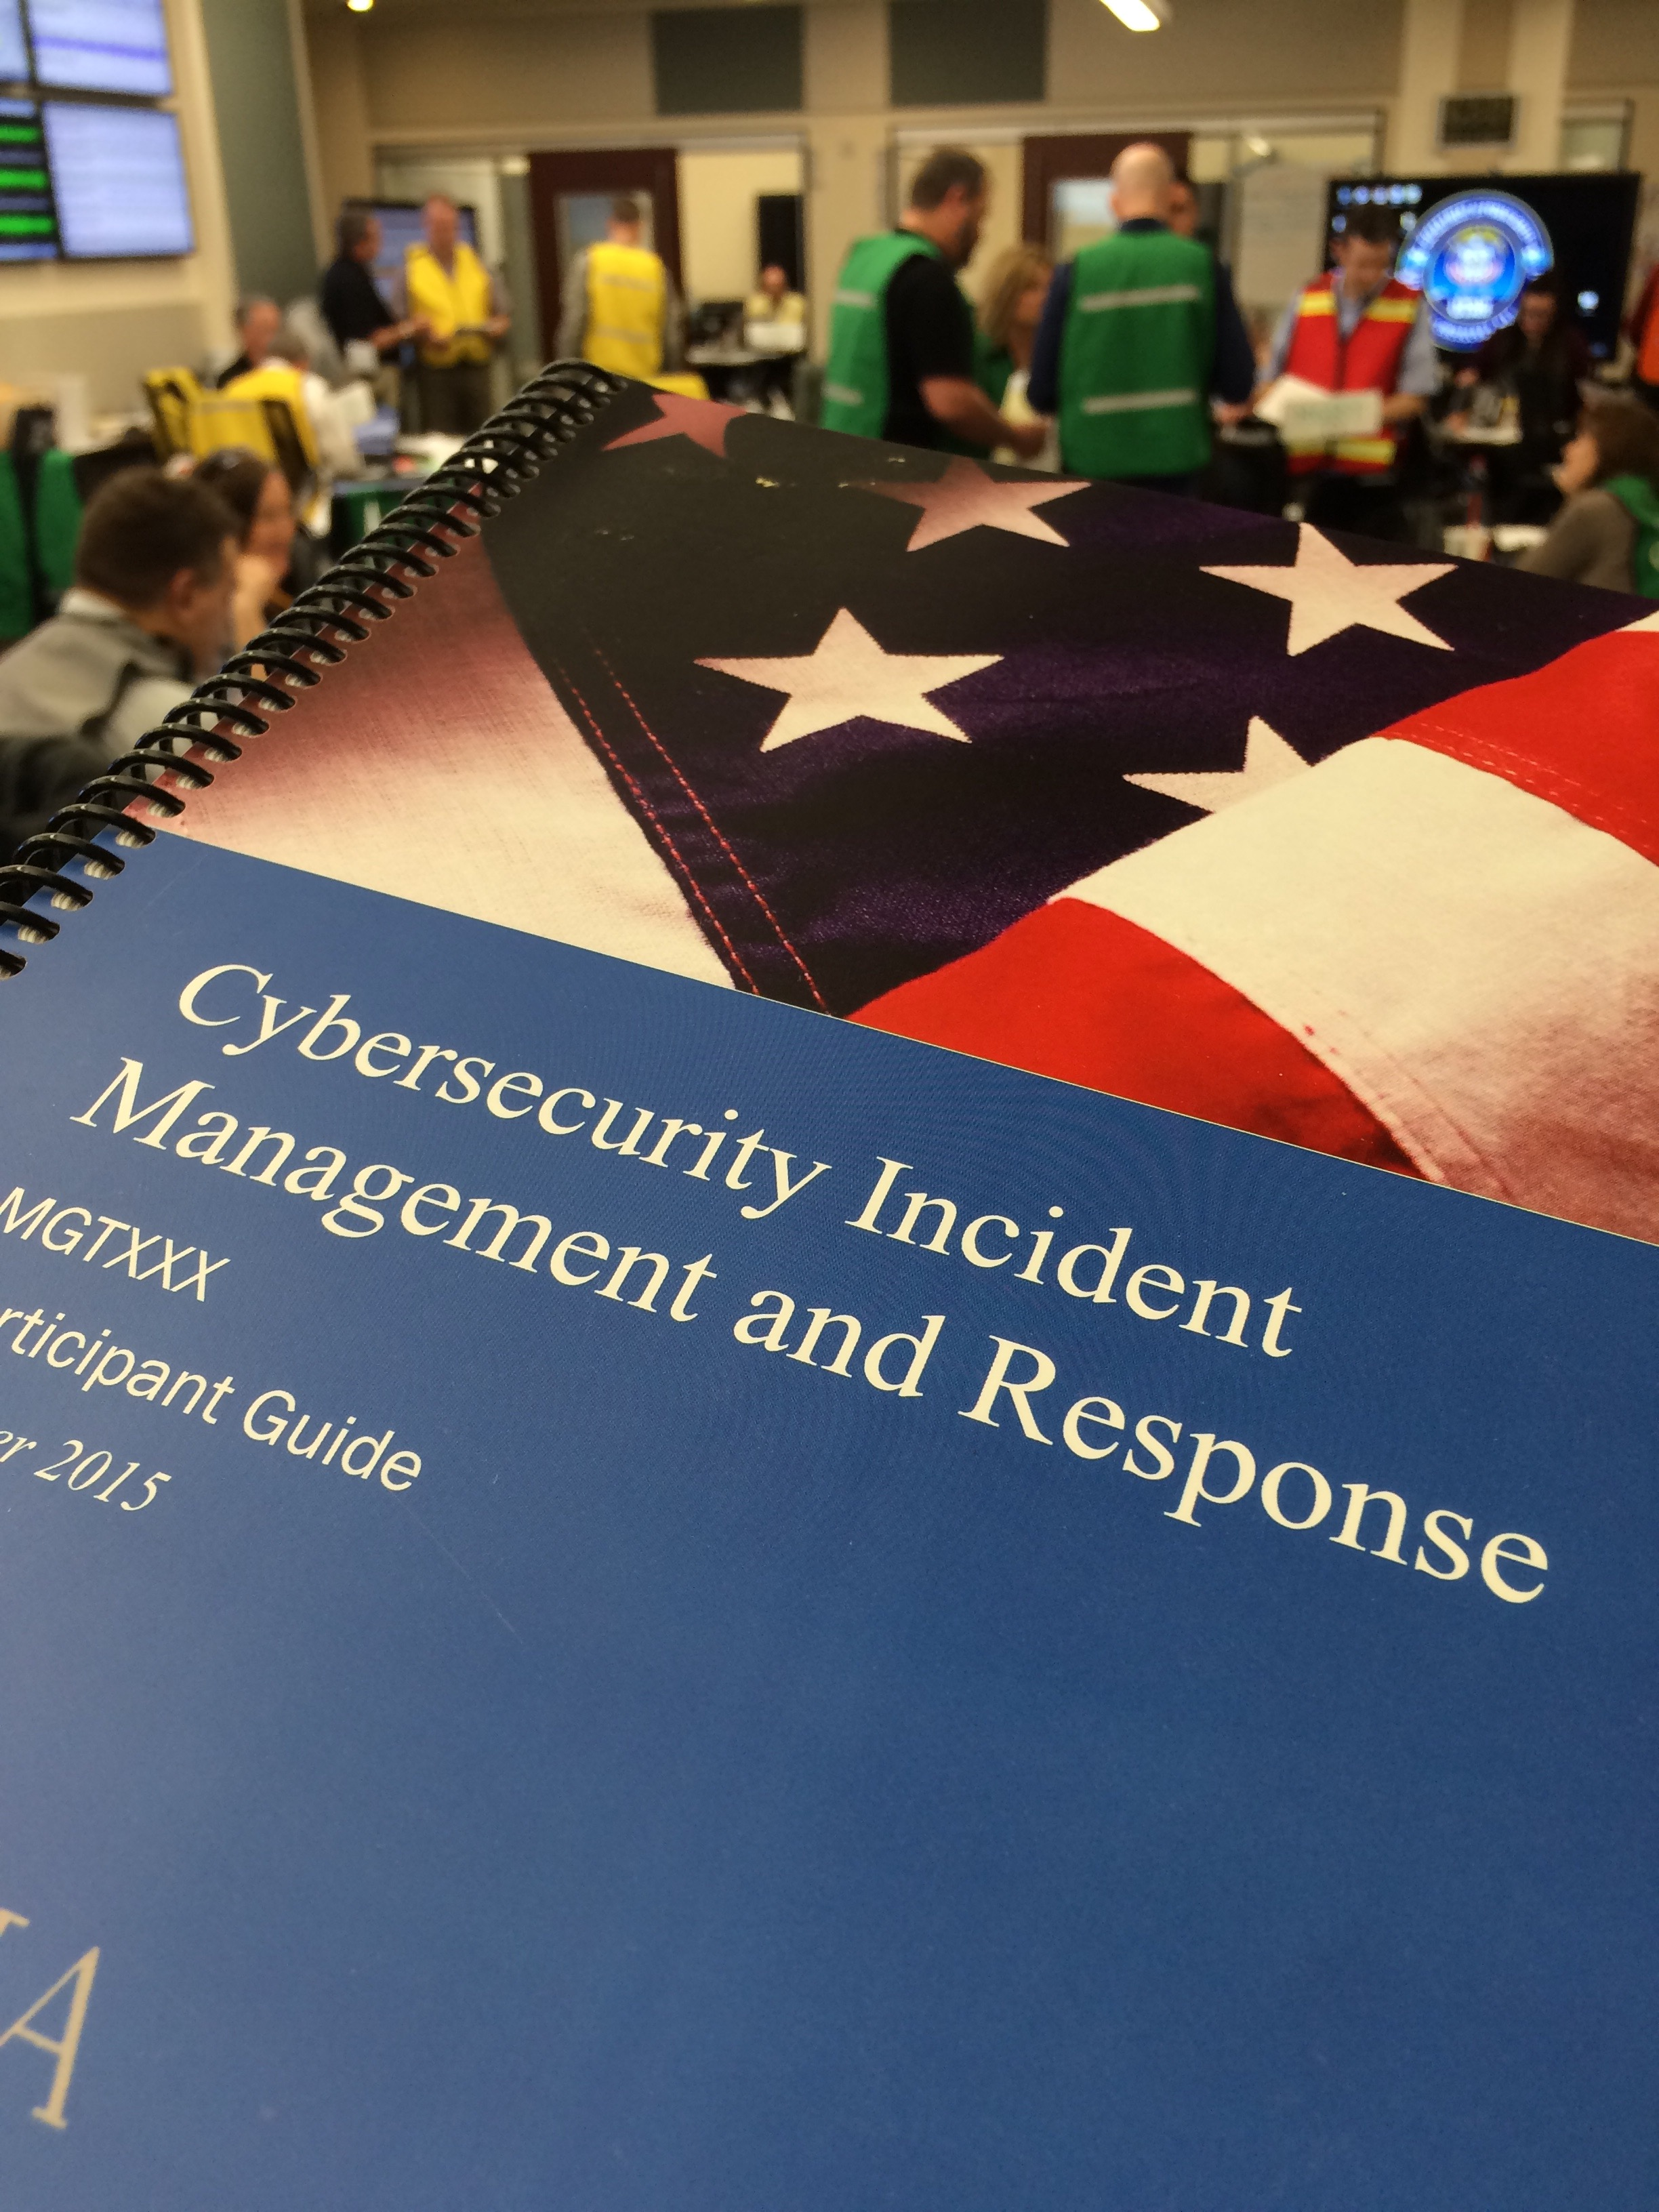 Cybersecurity incident management student manual